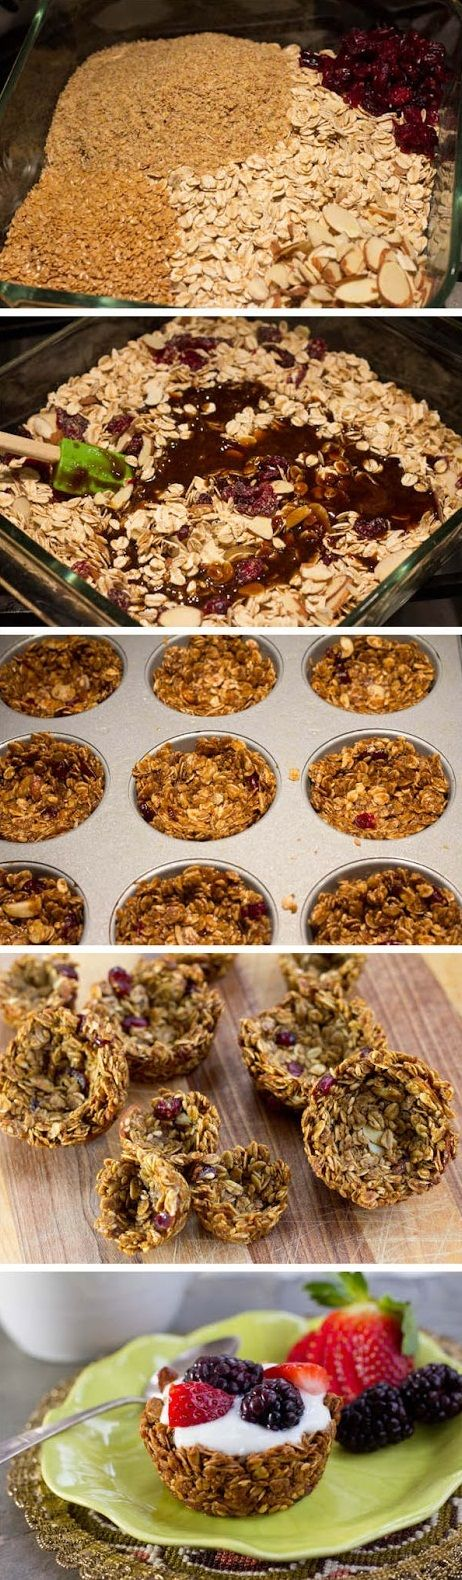 Morning Time Breakfast Granola Cups #breakfast #appetizers #recipes #dinner #lunch #yum #food #diy